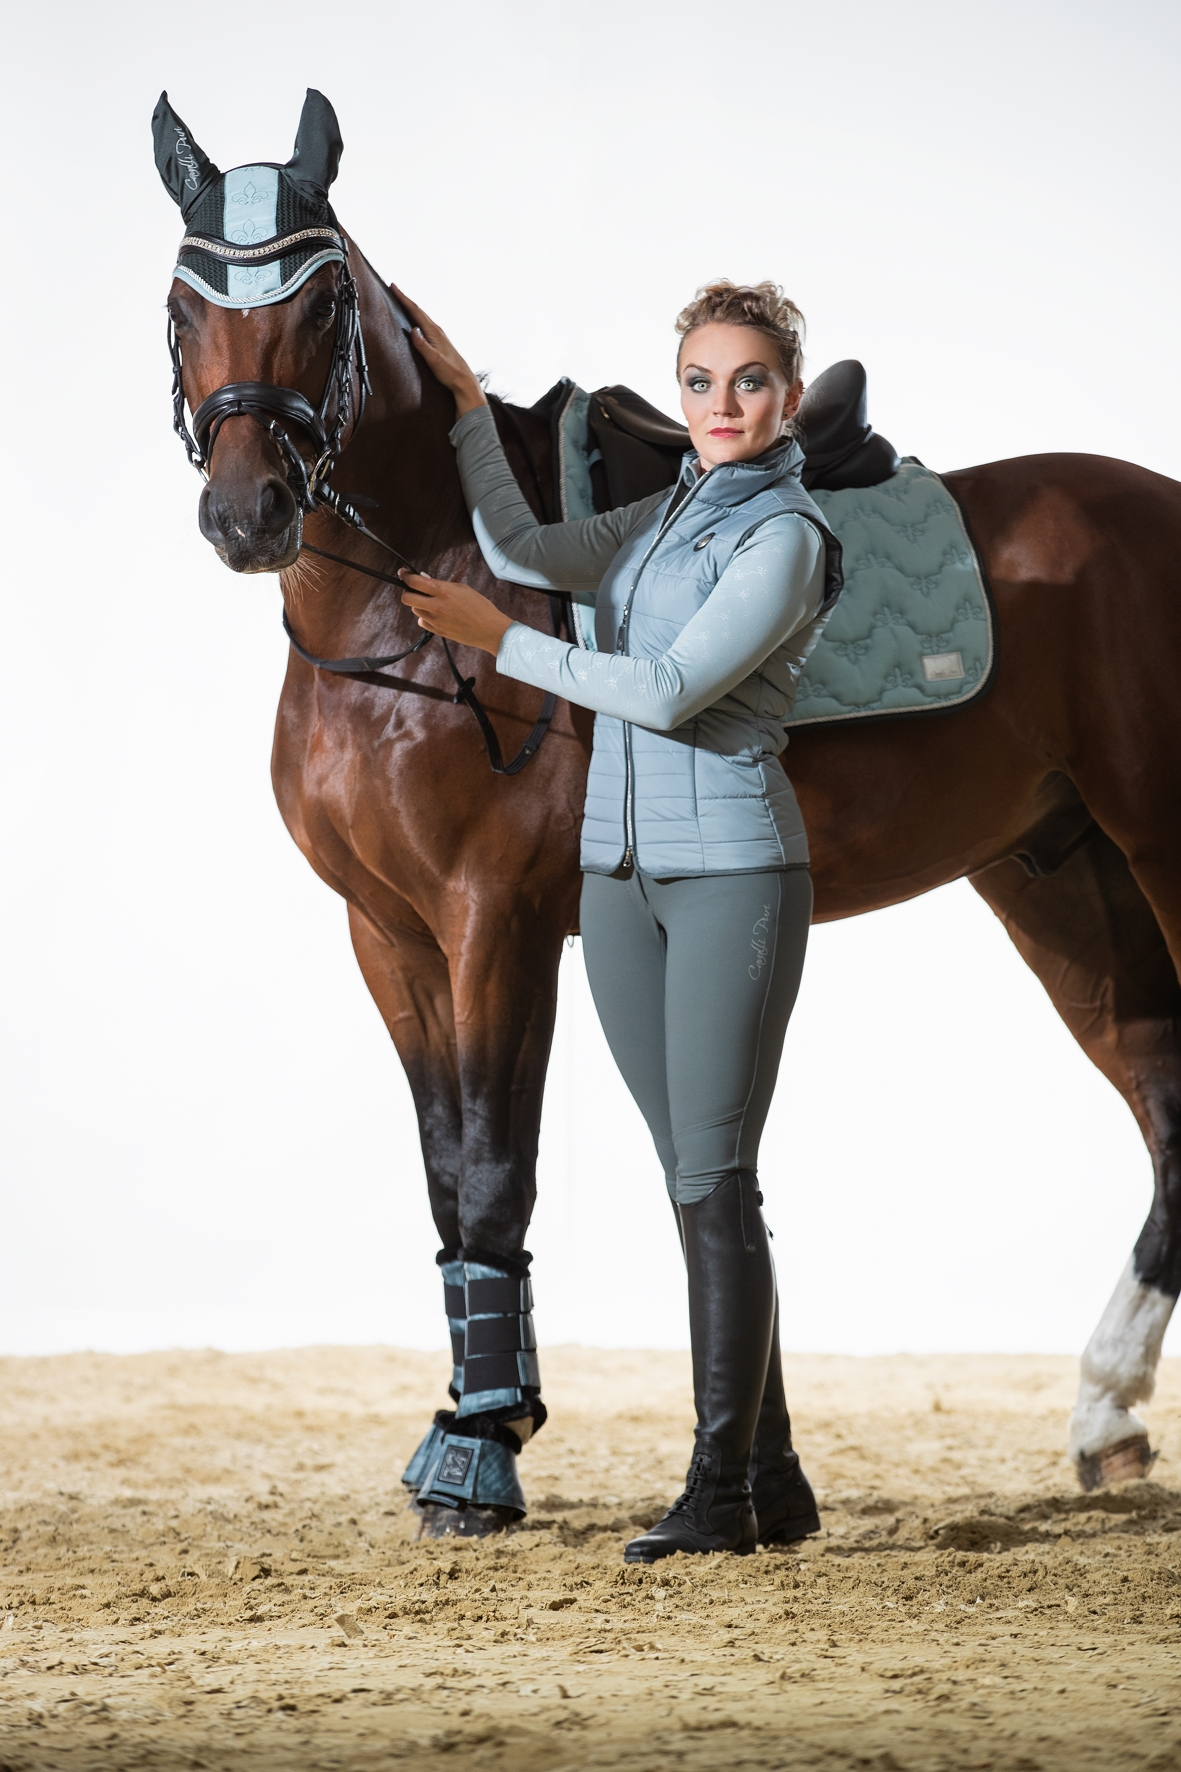 Cavalli Puri Breeze Saddle Pad The Connected Rider